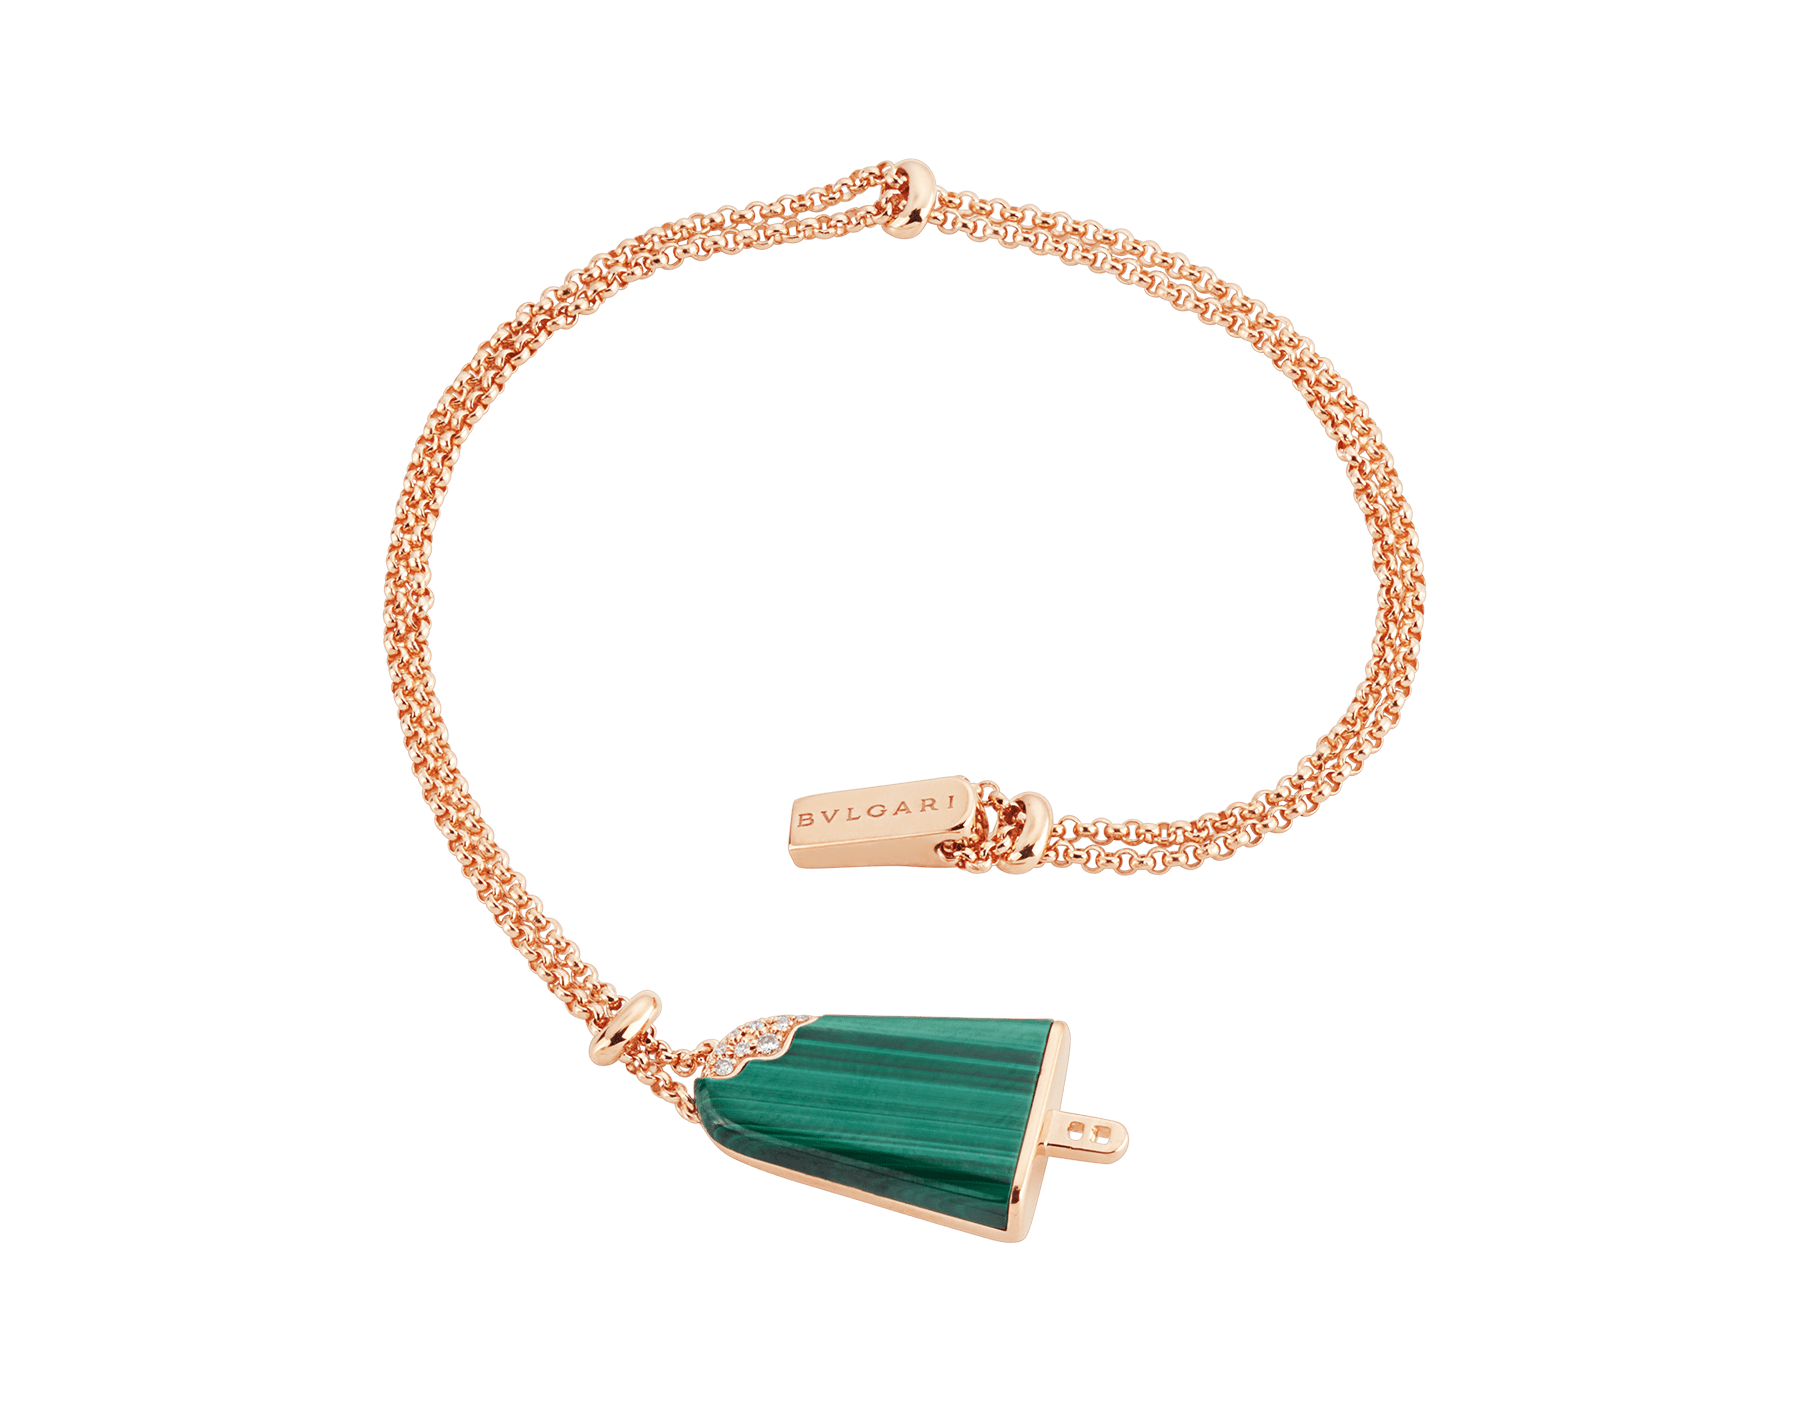 BVLGARI BVLGARI Gelati 18 kt rose gold soft bracelet set with malachite and pavé diamonds BR858327 image 2